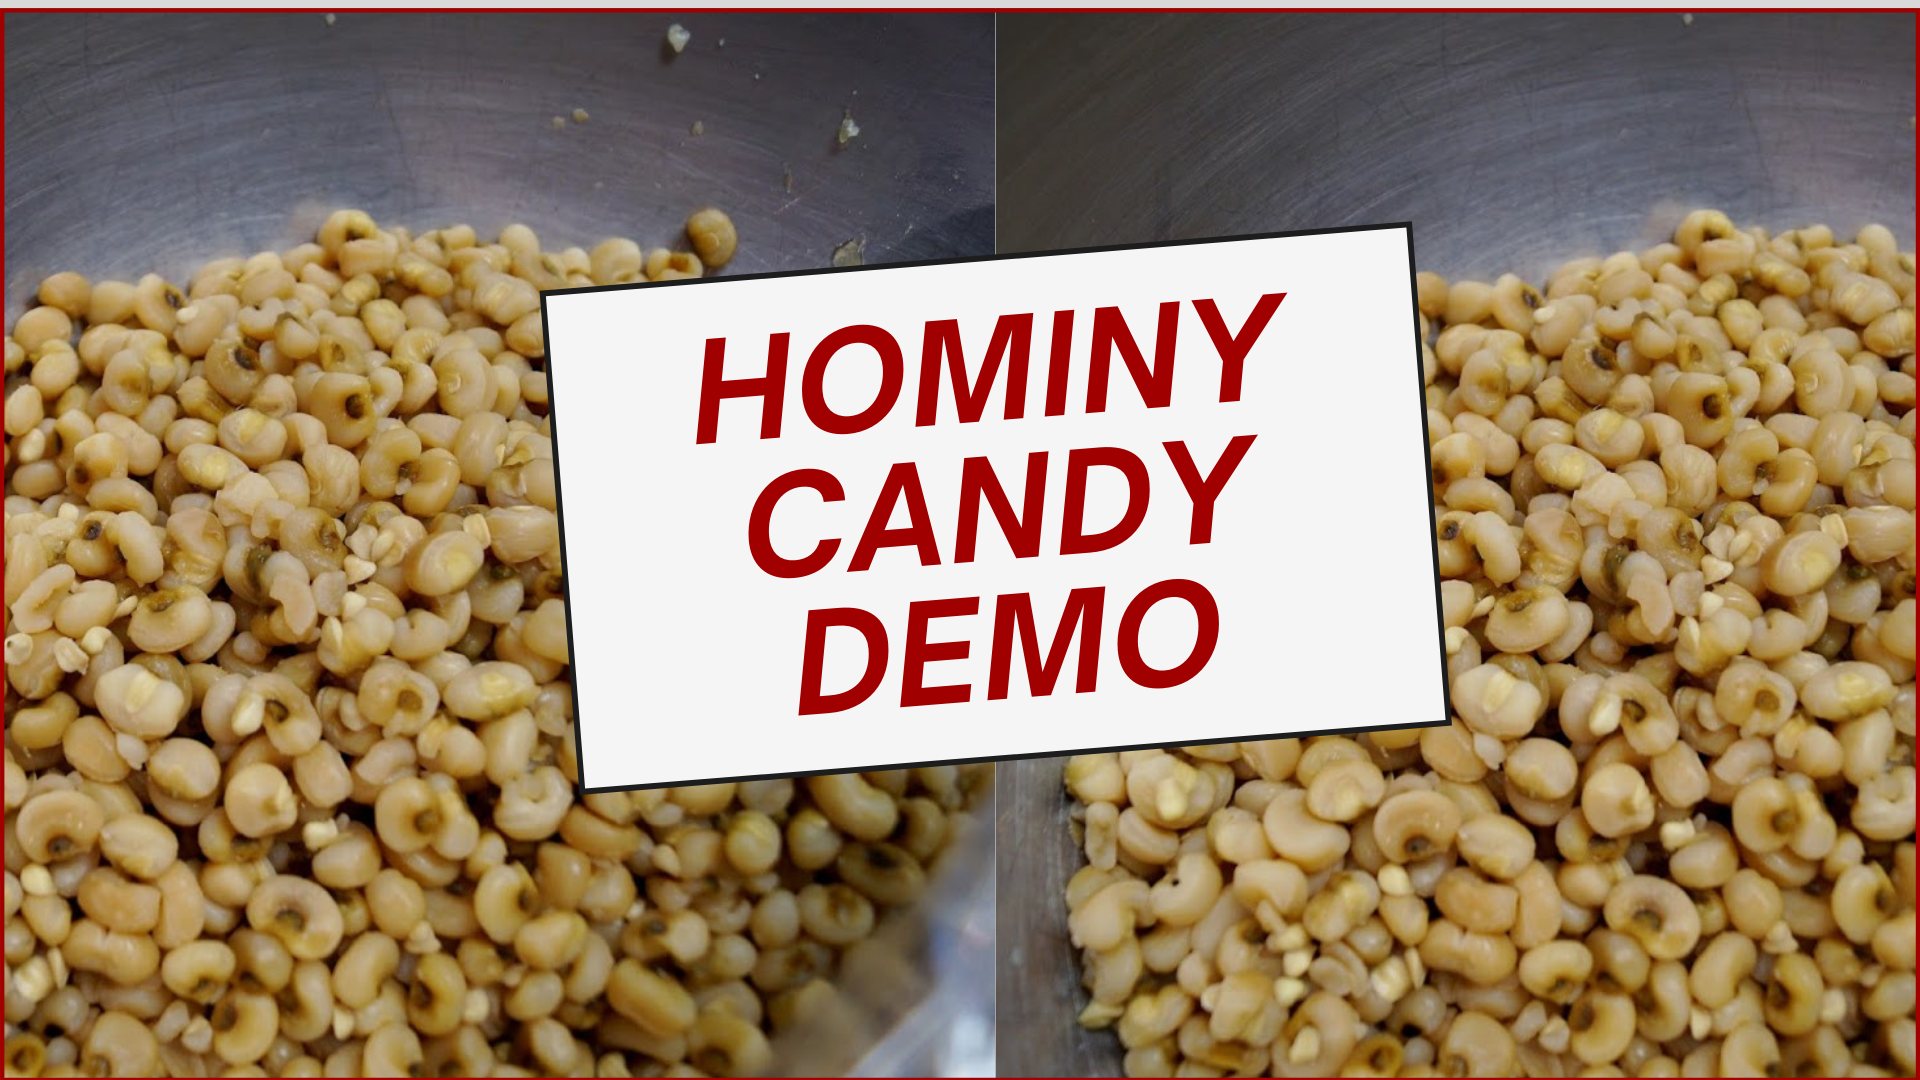 Hominy Candy Demo_facebook event